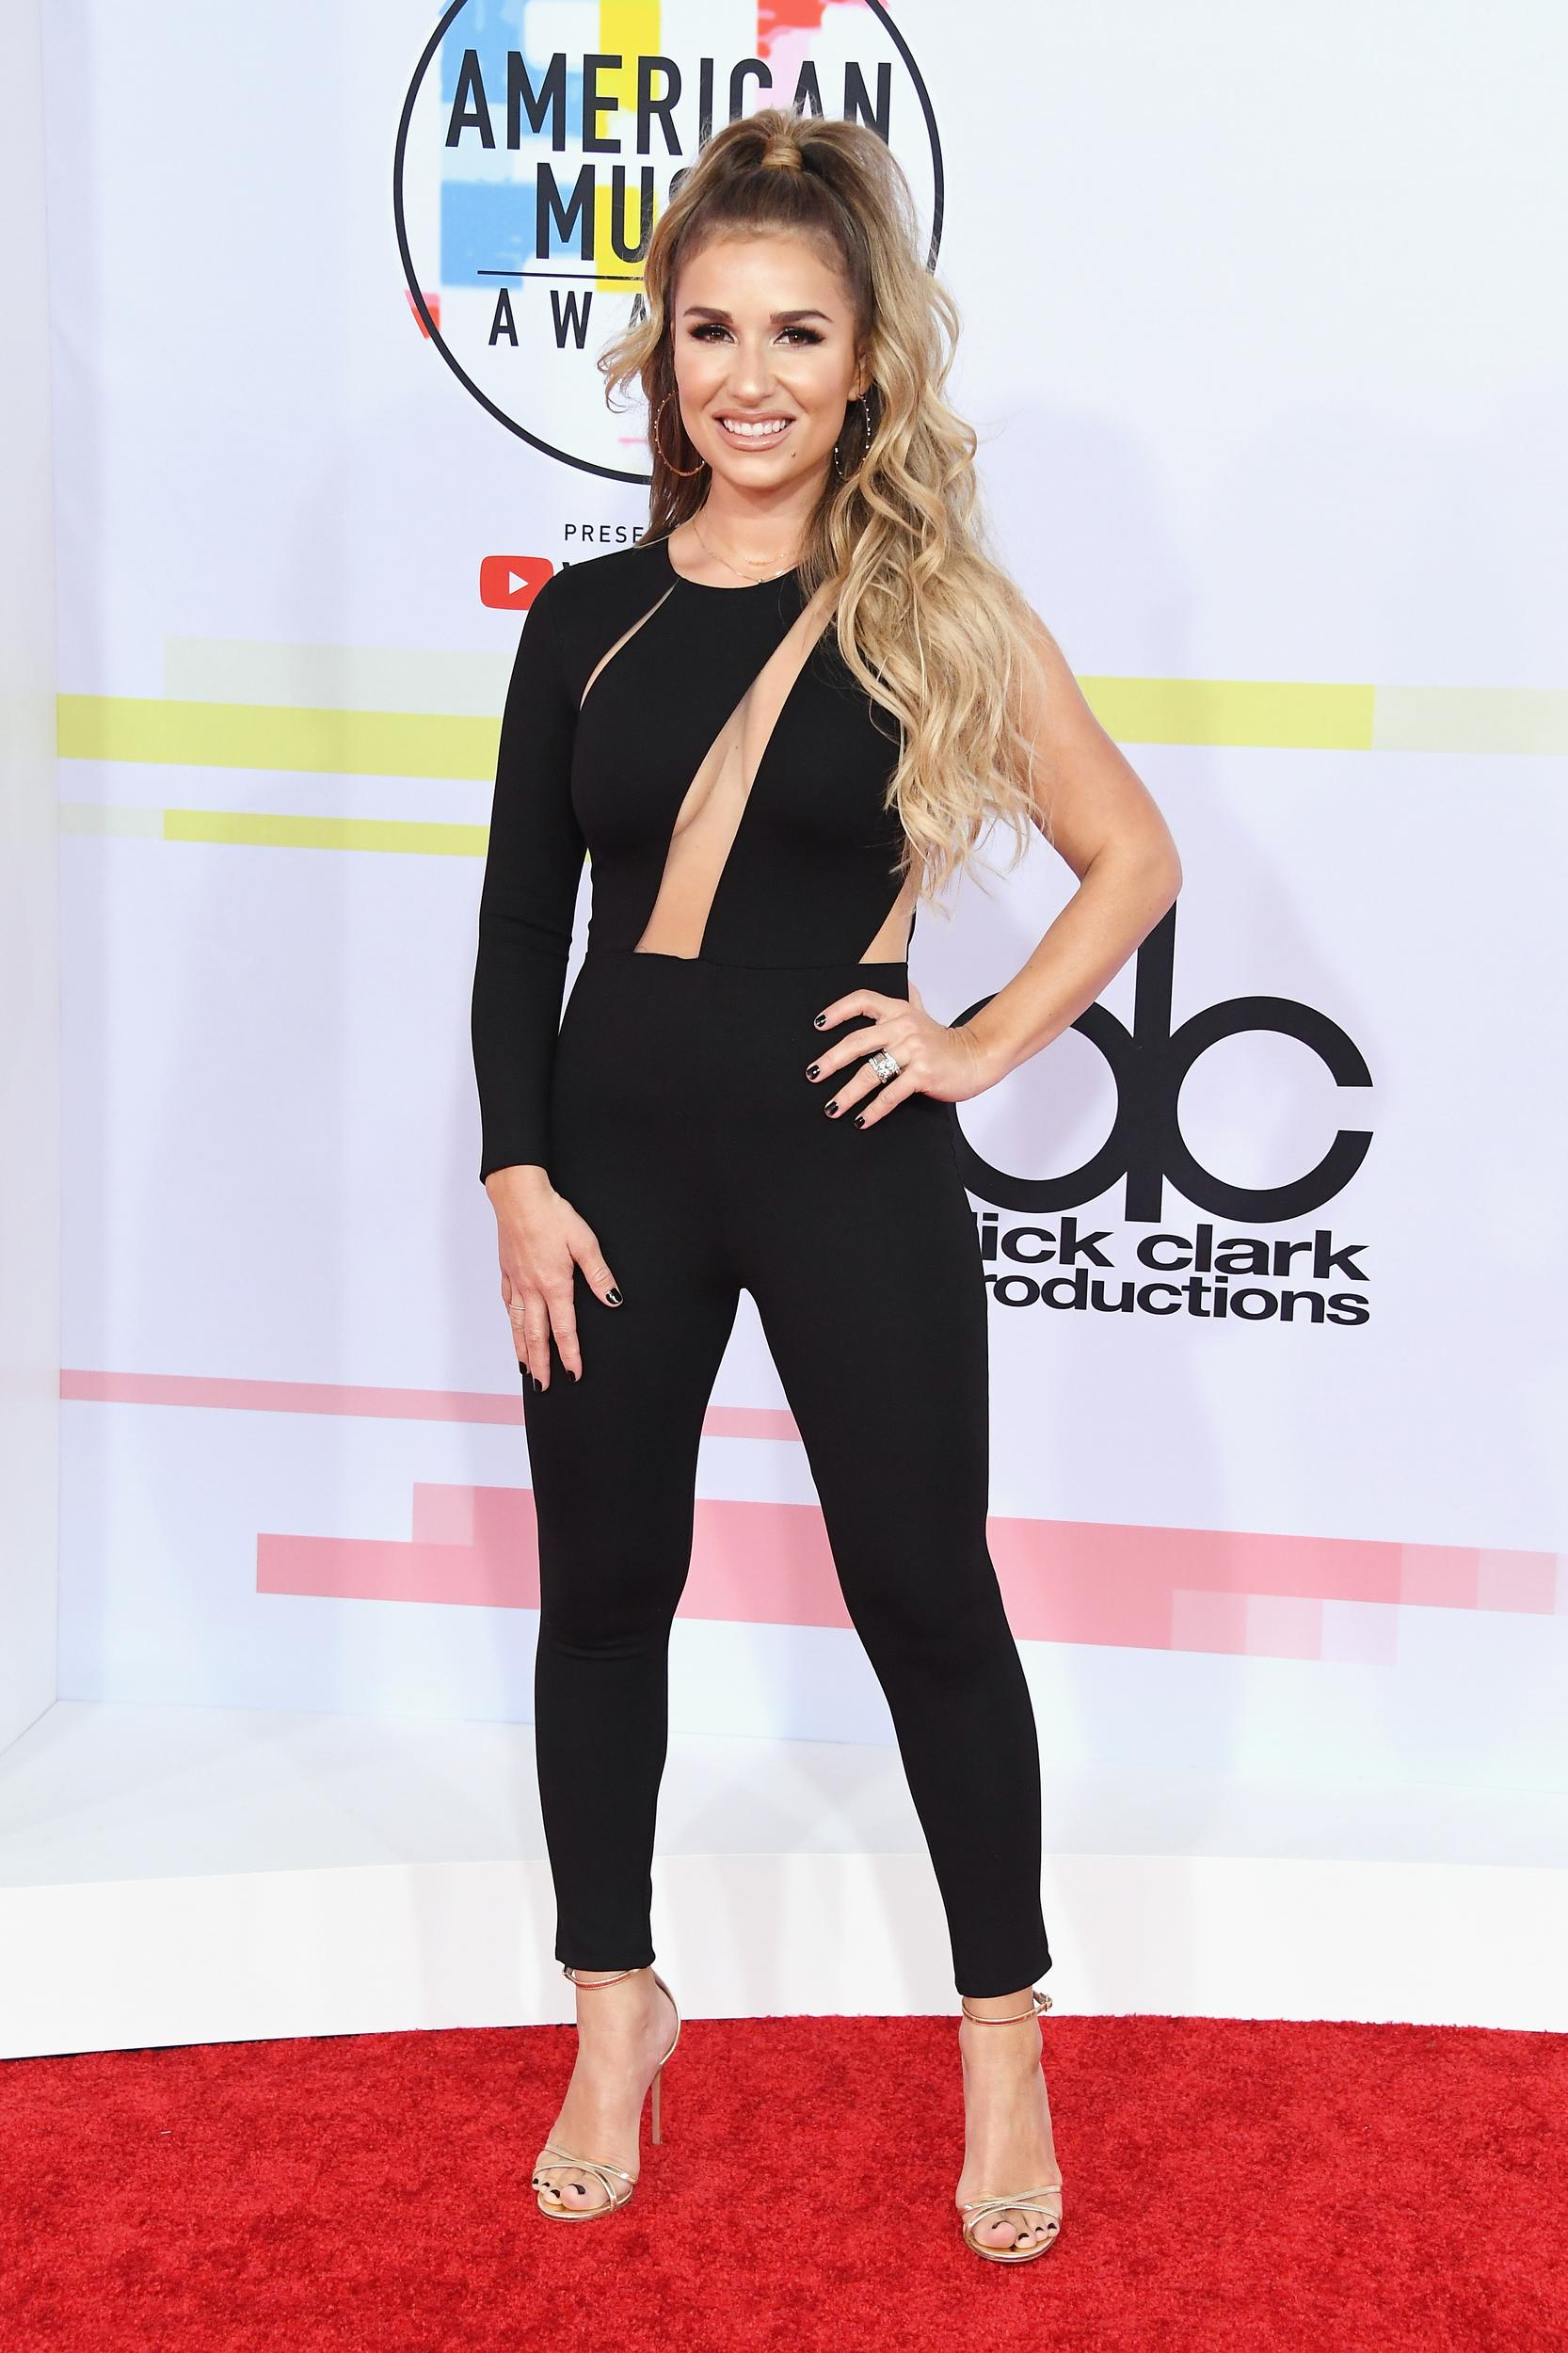 LOS ANGELES, CA - OCTOBER 09: Jessie James Decker attends the 2018 American Music Awards at Microsoft Theater on October 9, 2018 in Los Angeles, California. (Photo by Steve Granitz/WireImage)